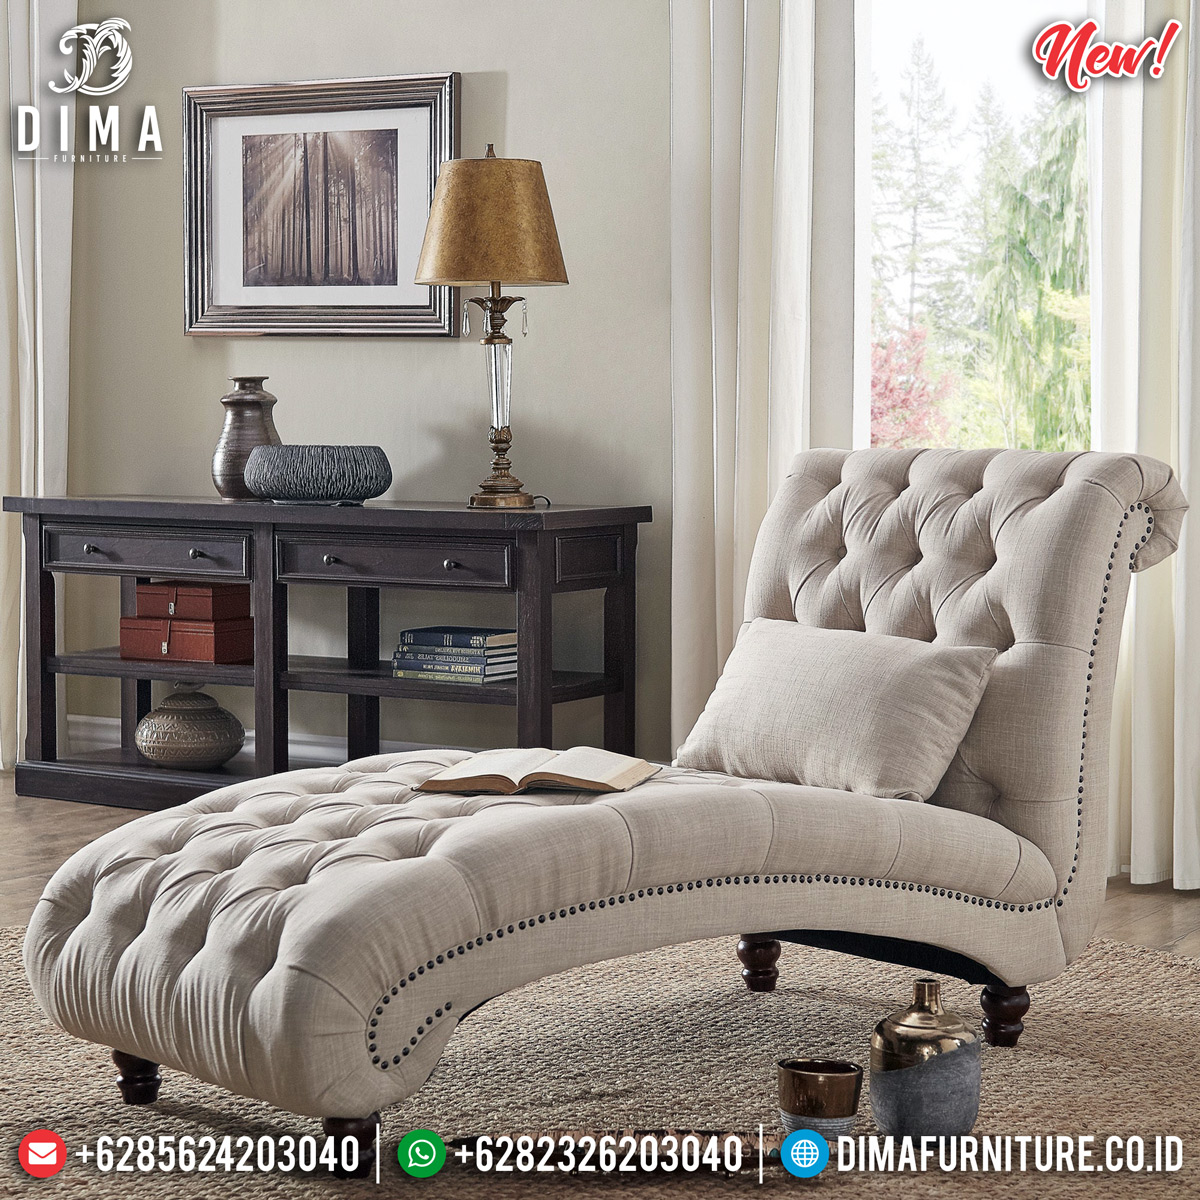 Harga Sofa Santai Minimalis Luxury Best Quality Venezia Model TTJ-0810